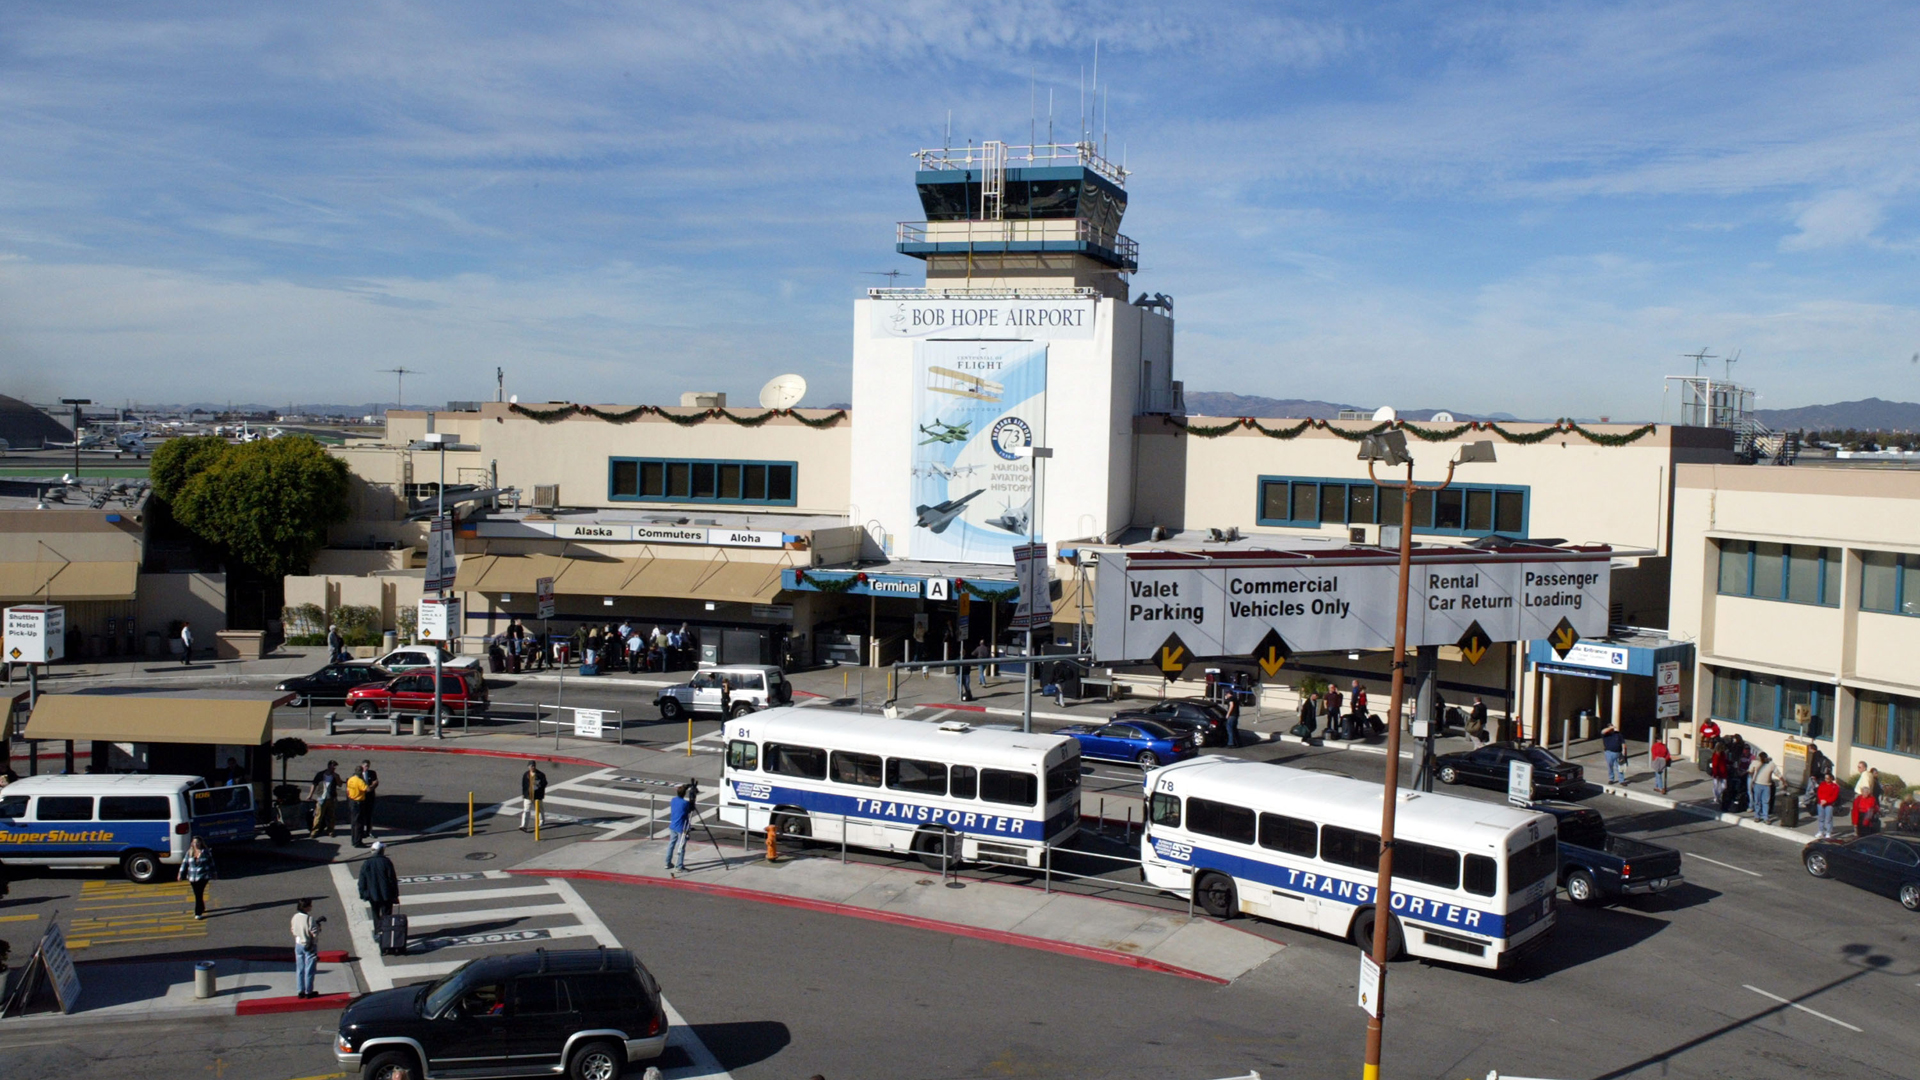 The Hollywood Burbank Airport is seen in a file photo from 2003. (Credit: Frazer Harrison/Getty Images)